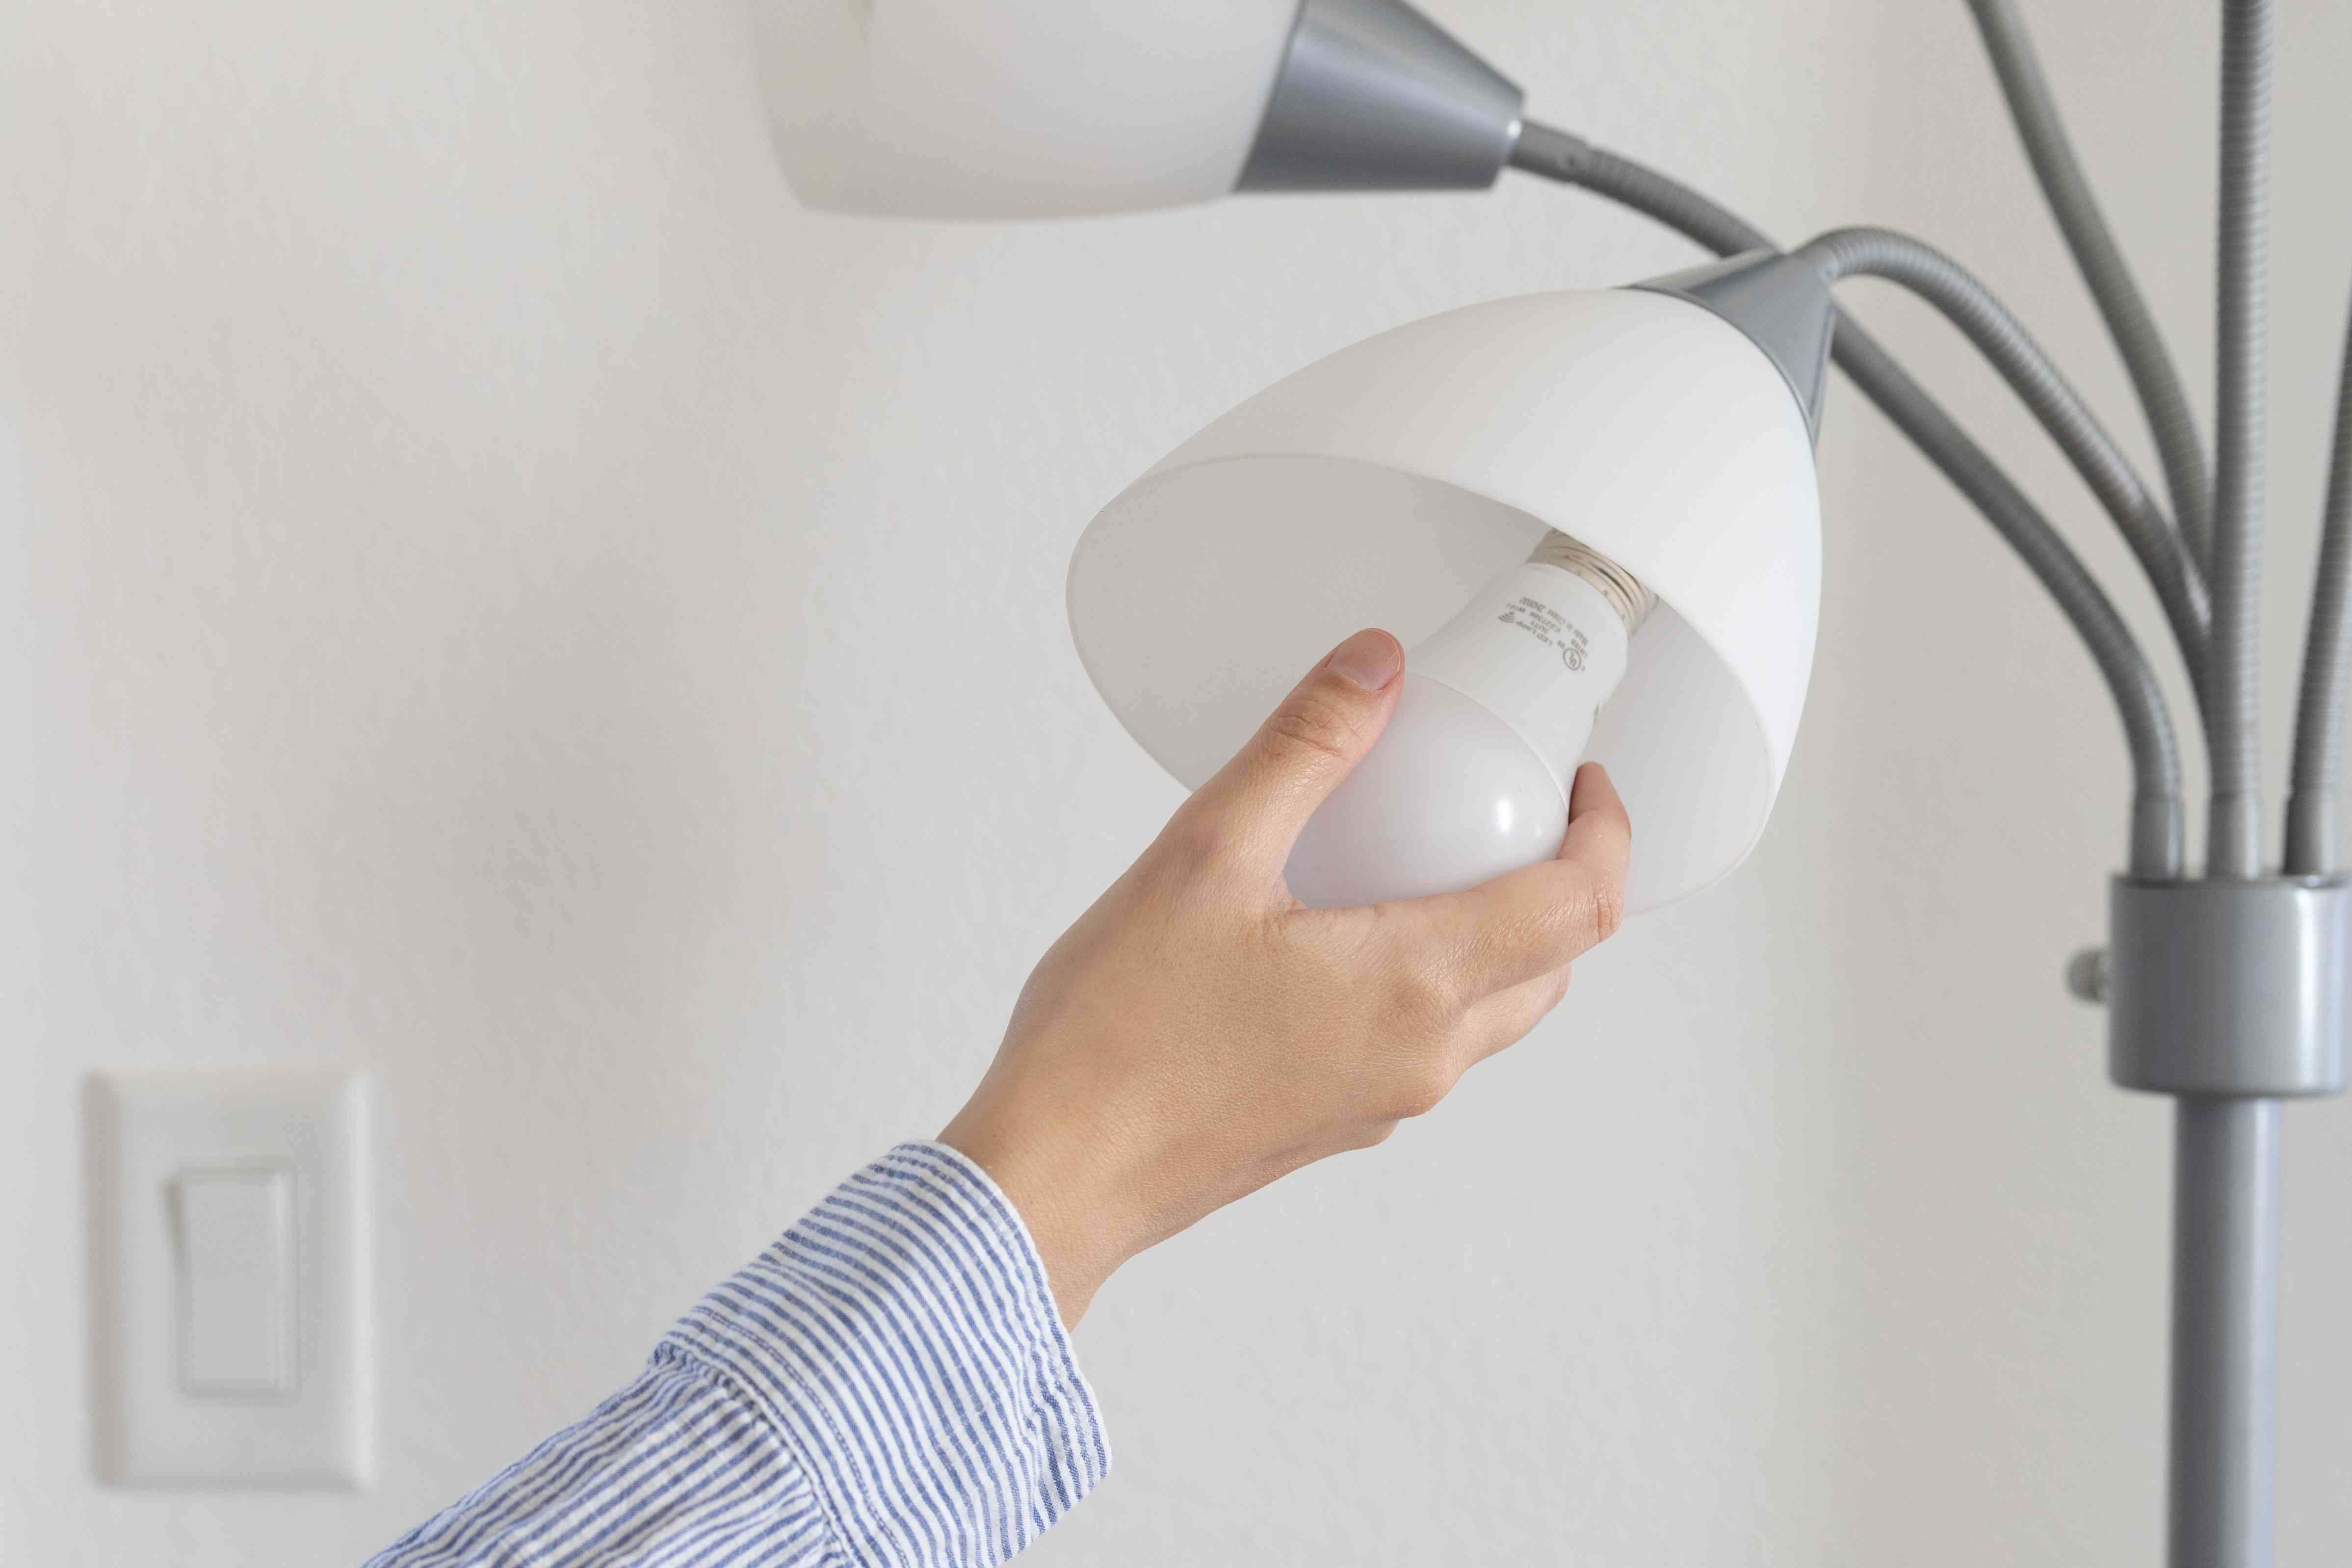 LED light bulb being inserted into gray lamp to lower electric bill